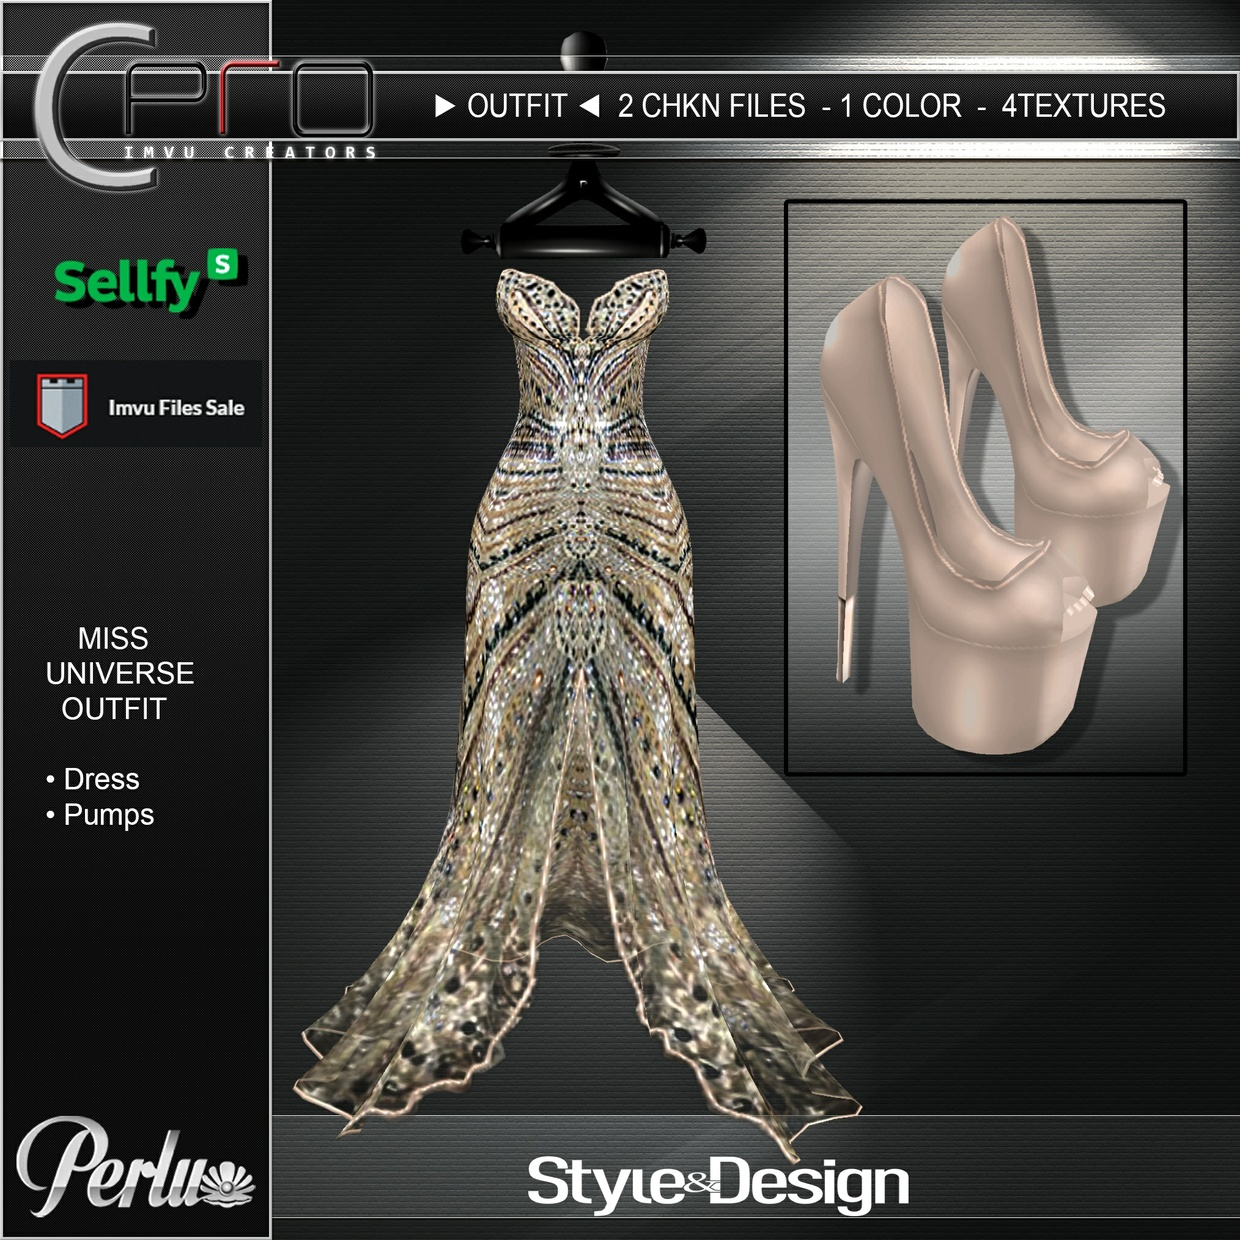 ►MISS UNIVERSE OUTFIT◄